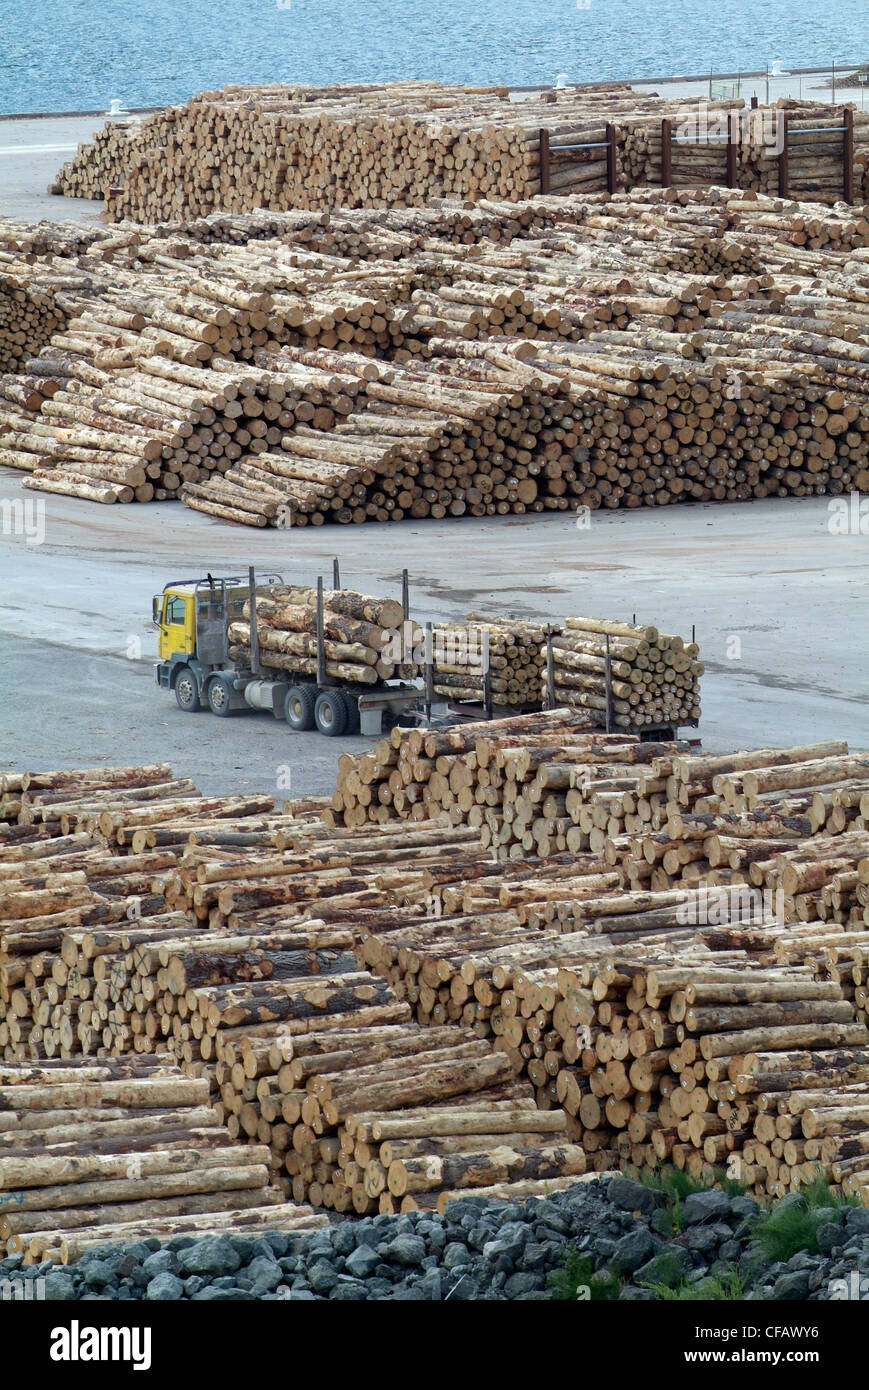 New Zealand, Picton, felled timber being stockpiled ready for shipment South Island port exports pulp pa - Stock Image